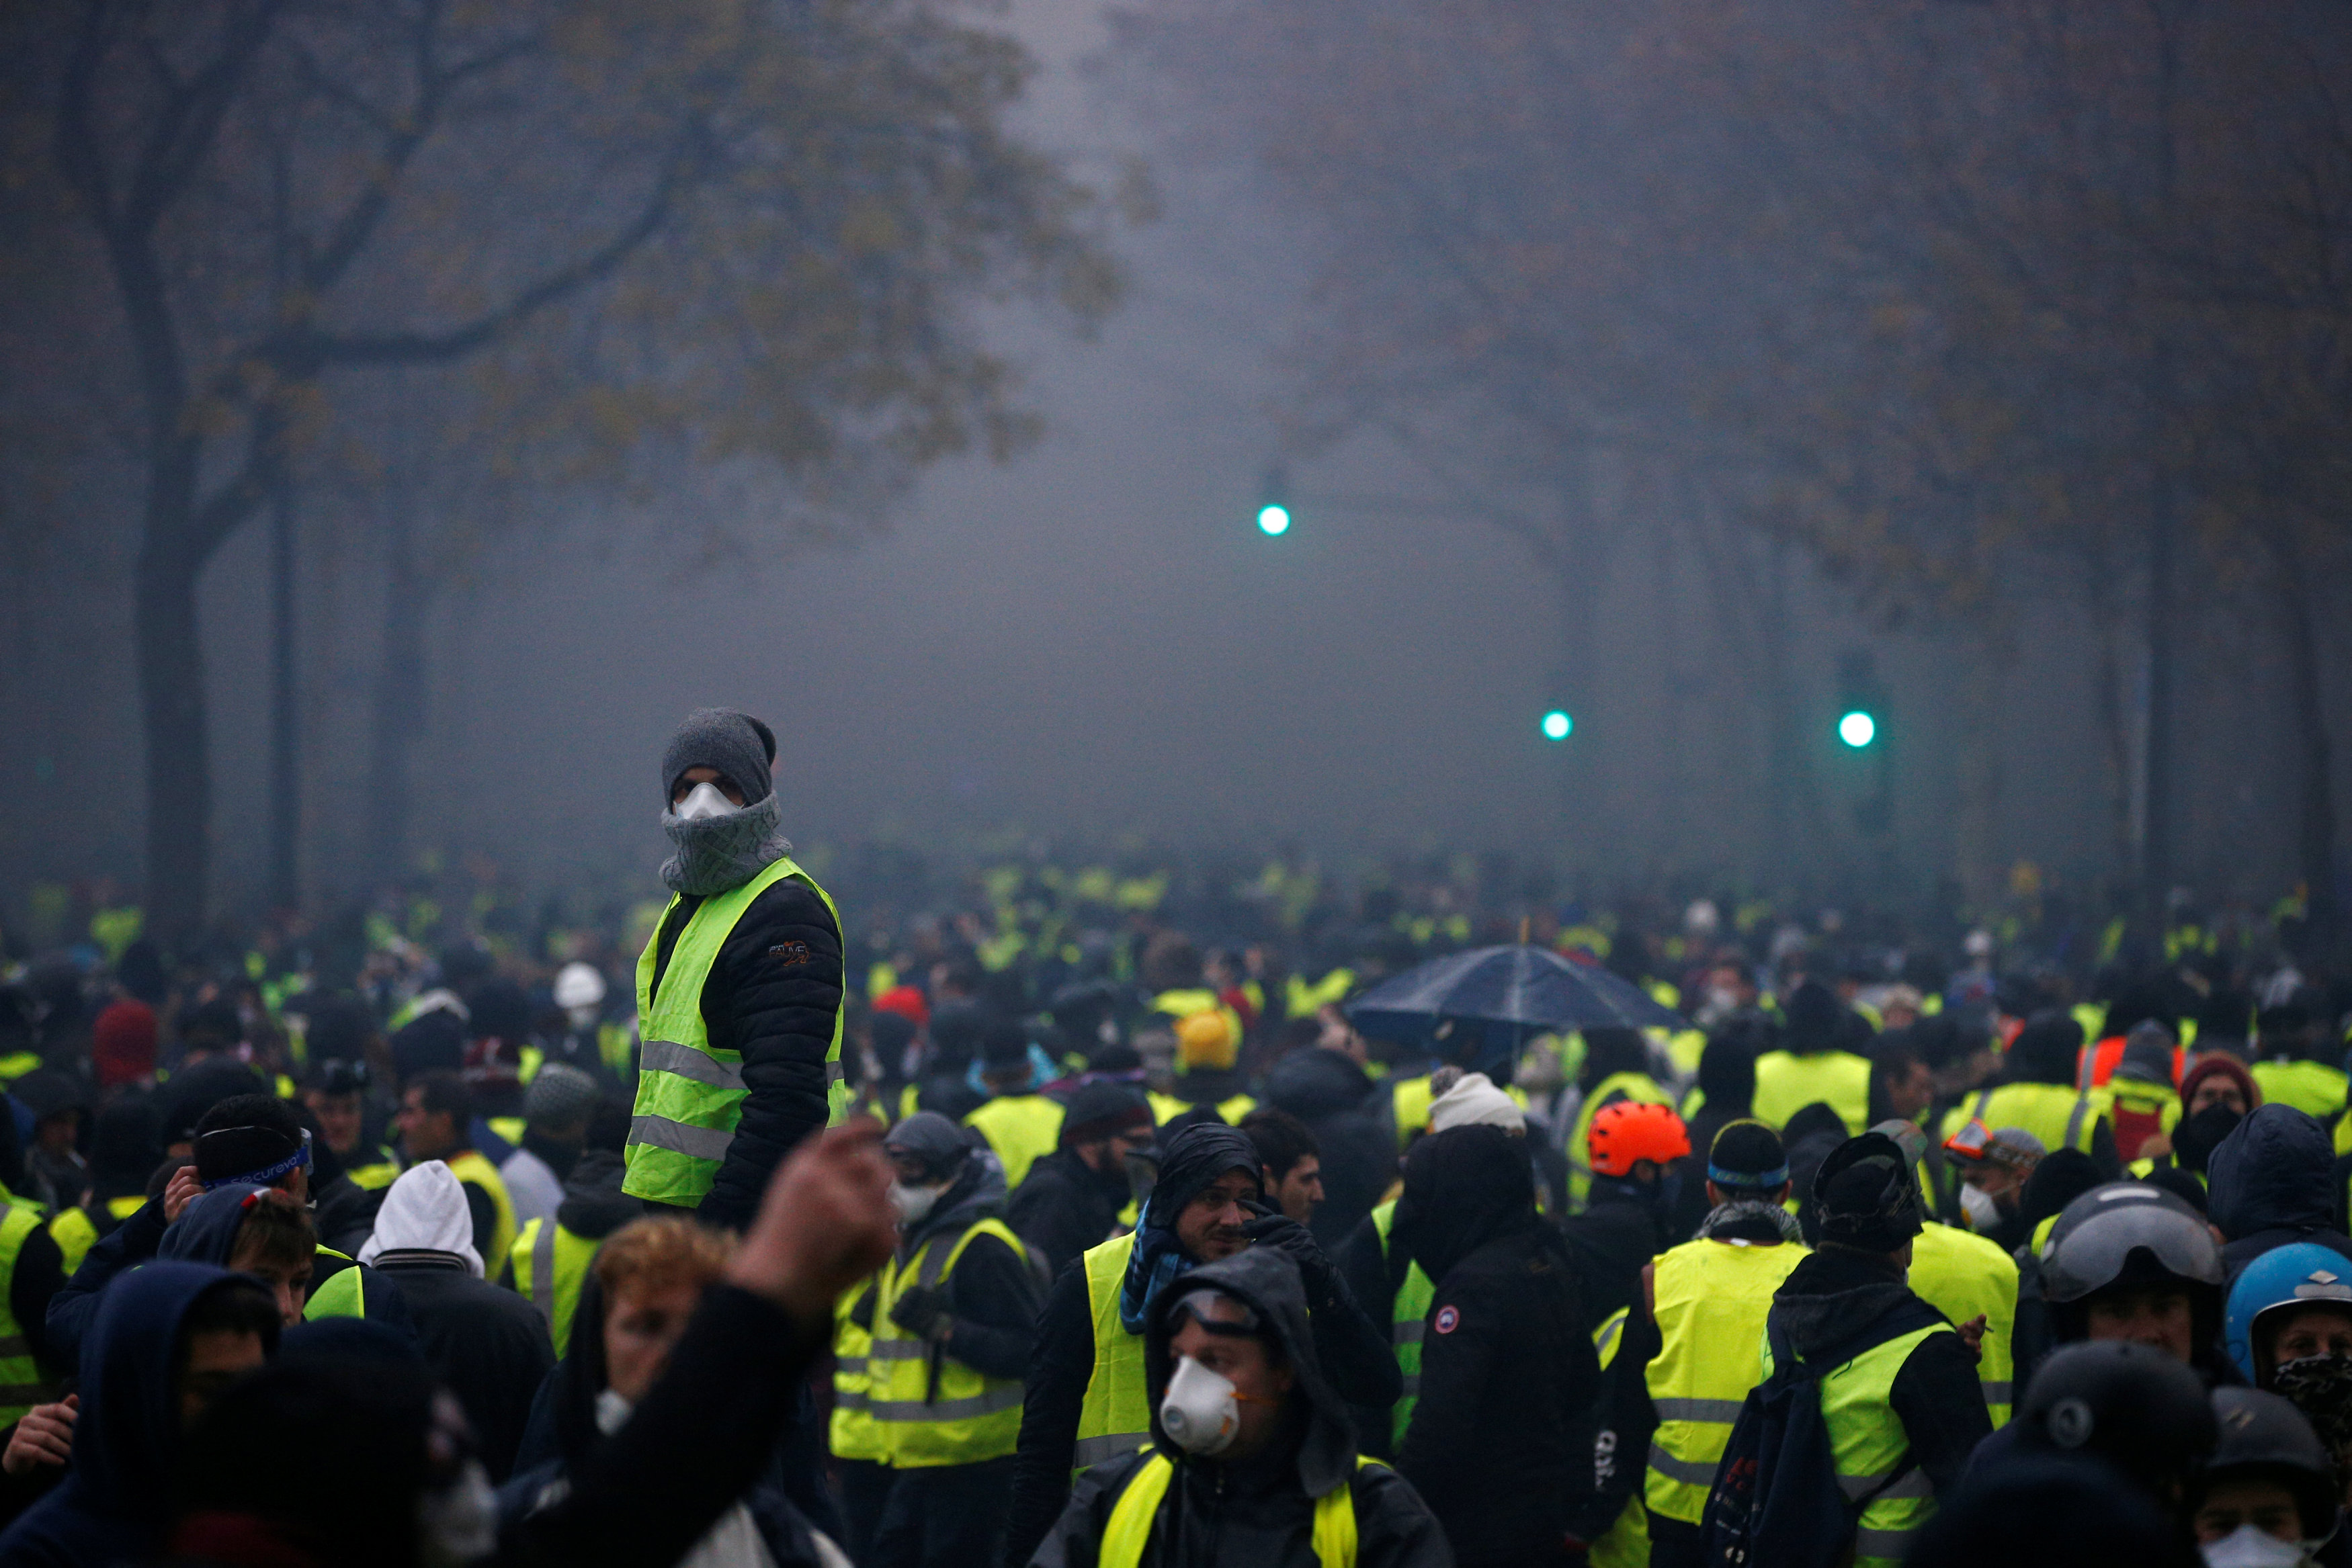 2018-12-01T153619Z_179620410_RC13783D9370_RTRMADP_3_FRANCE-PROTESTS